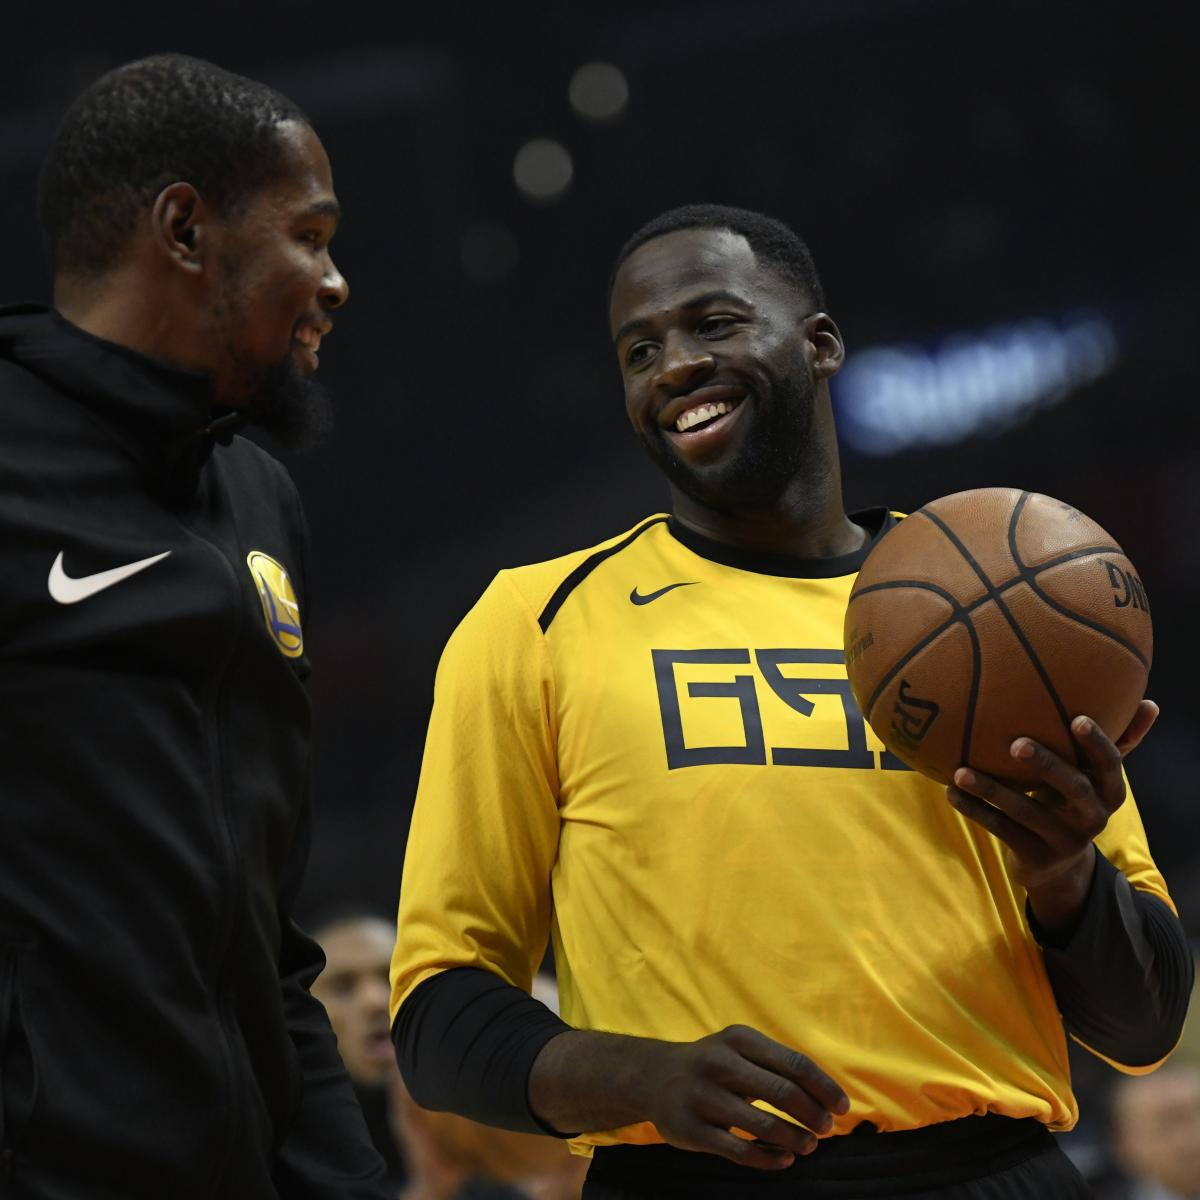 Warriors Come Out To Play Bleacher Report: Draymond Green, Warriors Can't Be Mad At Kevin Durant